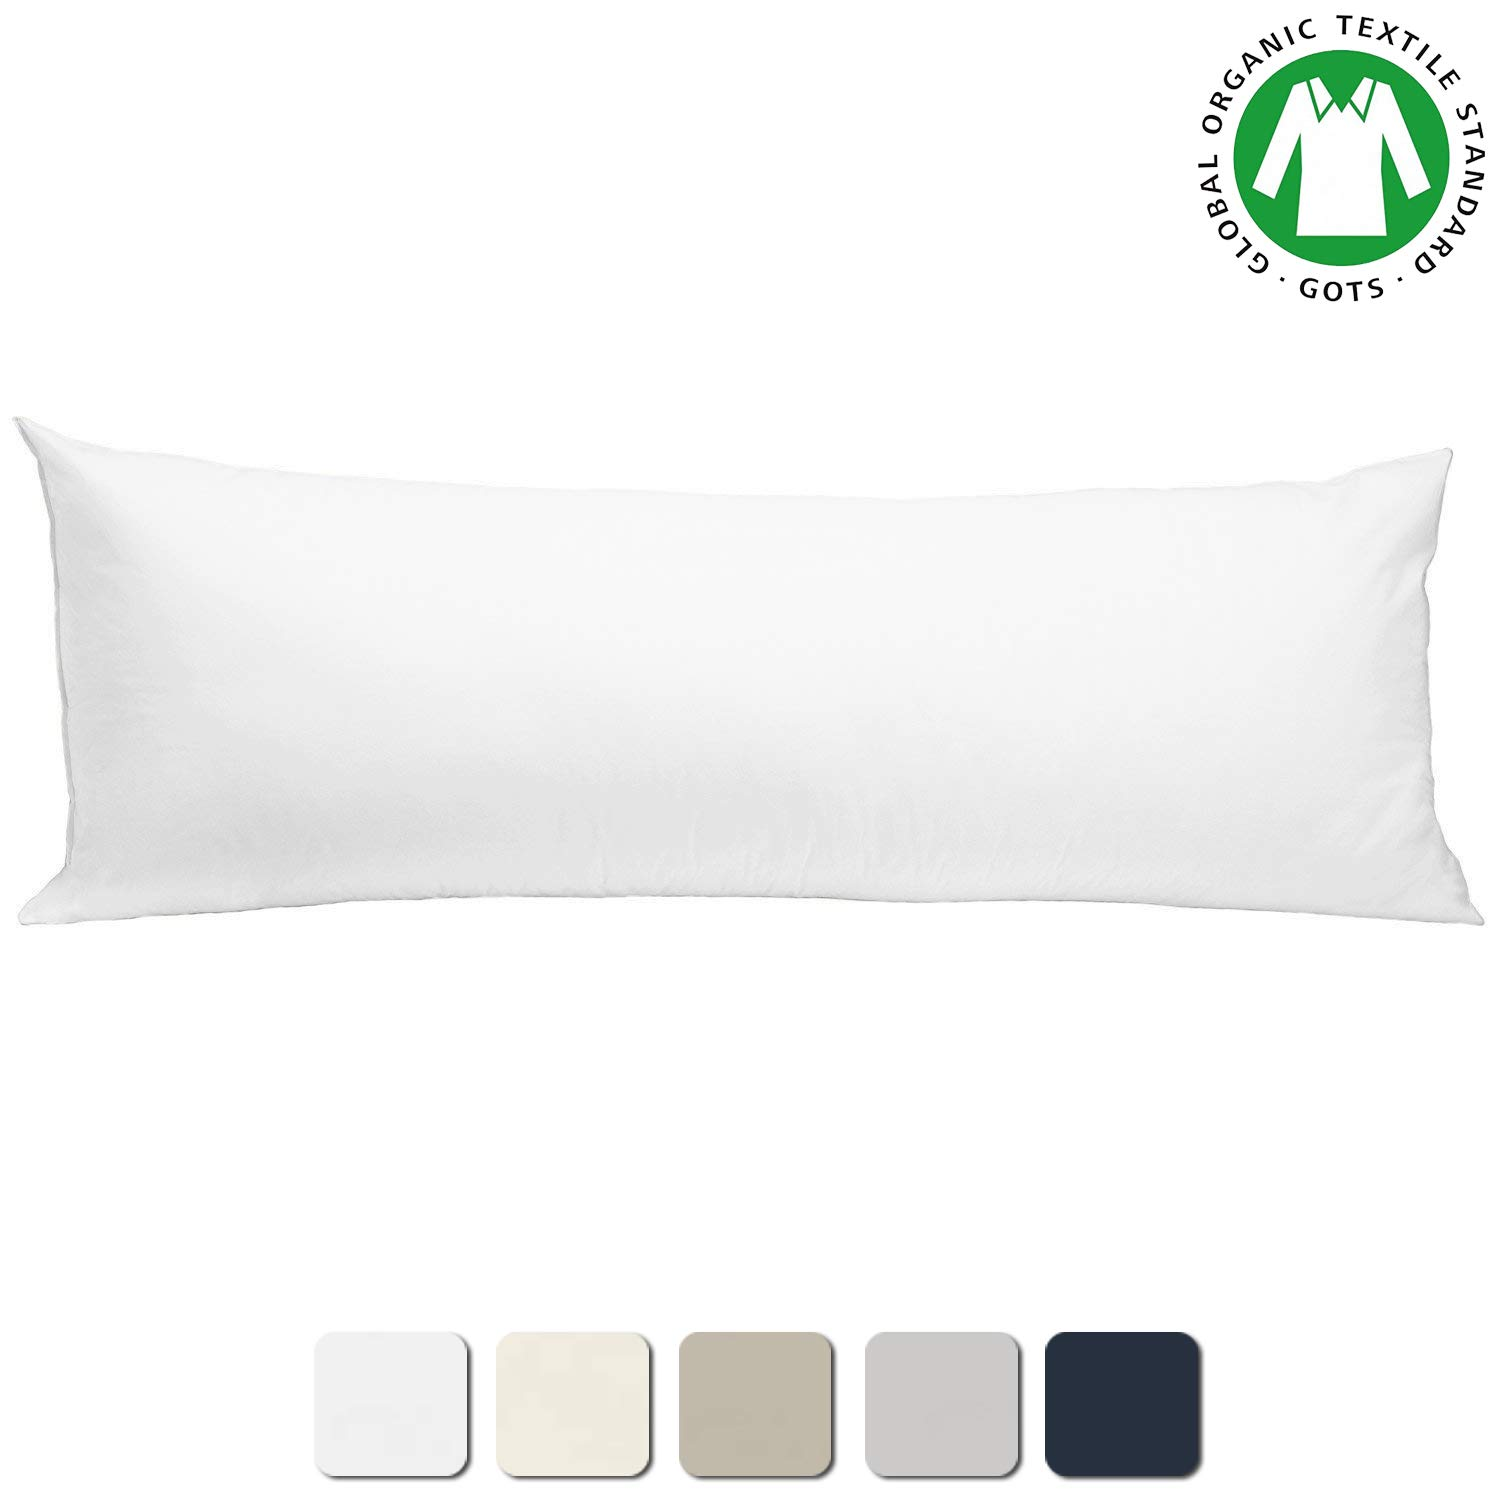 "BIOWEAVES 100% Organic Cotton Body Pillow Cover for Body Pillowcases 300 Thread Count Soft Sateen Weave GOTS Certified with Zipped Closure - 21"" x 54"", White"